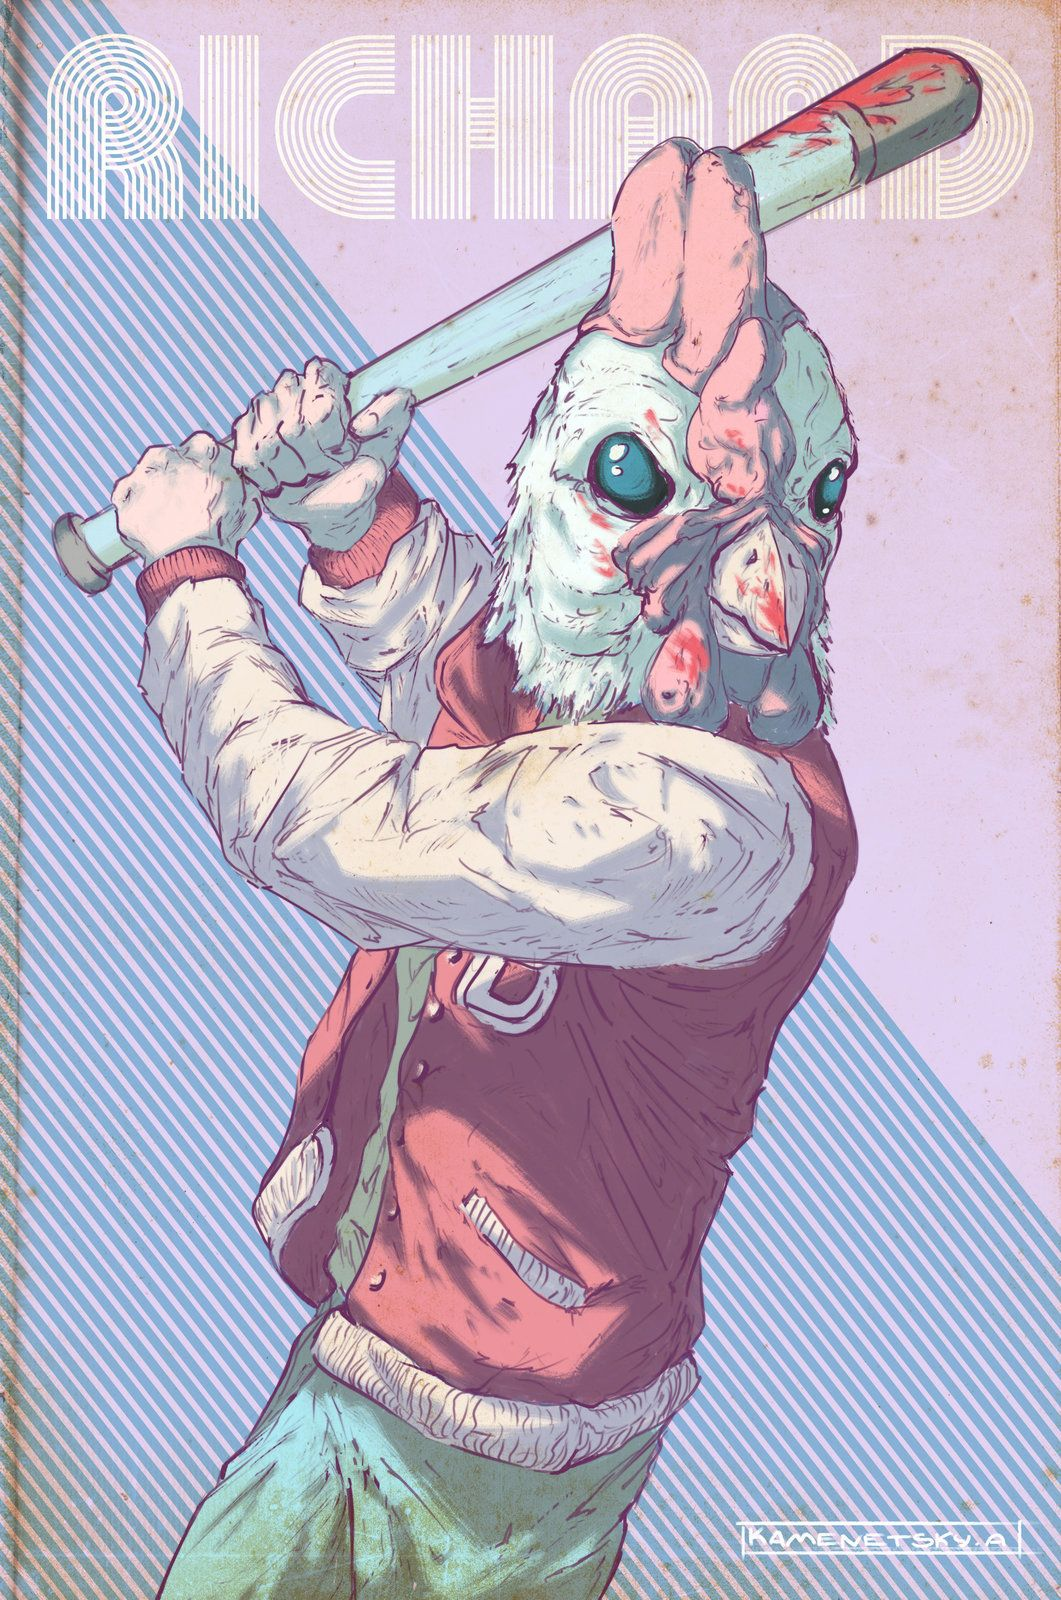 Hotline Miami. Richard, Andrew Kamenetsky on ArtStation at https://www.artstation.com/artwork/hotline-miami-richard